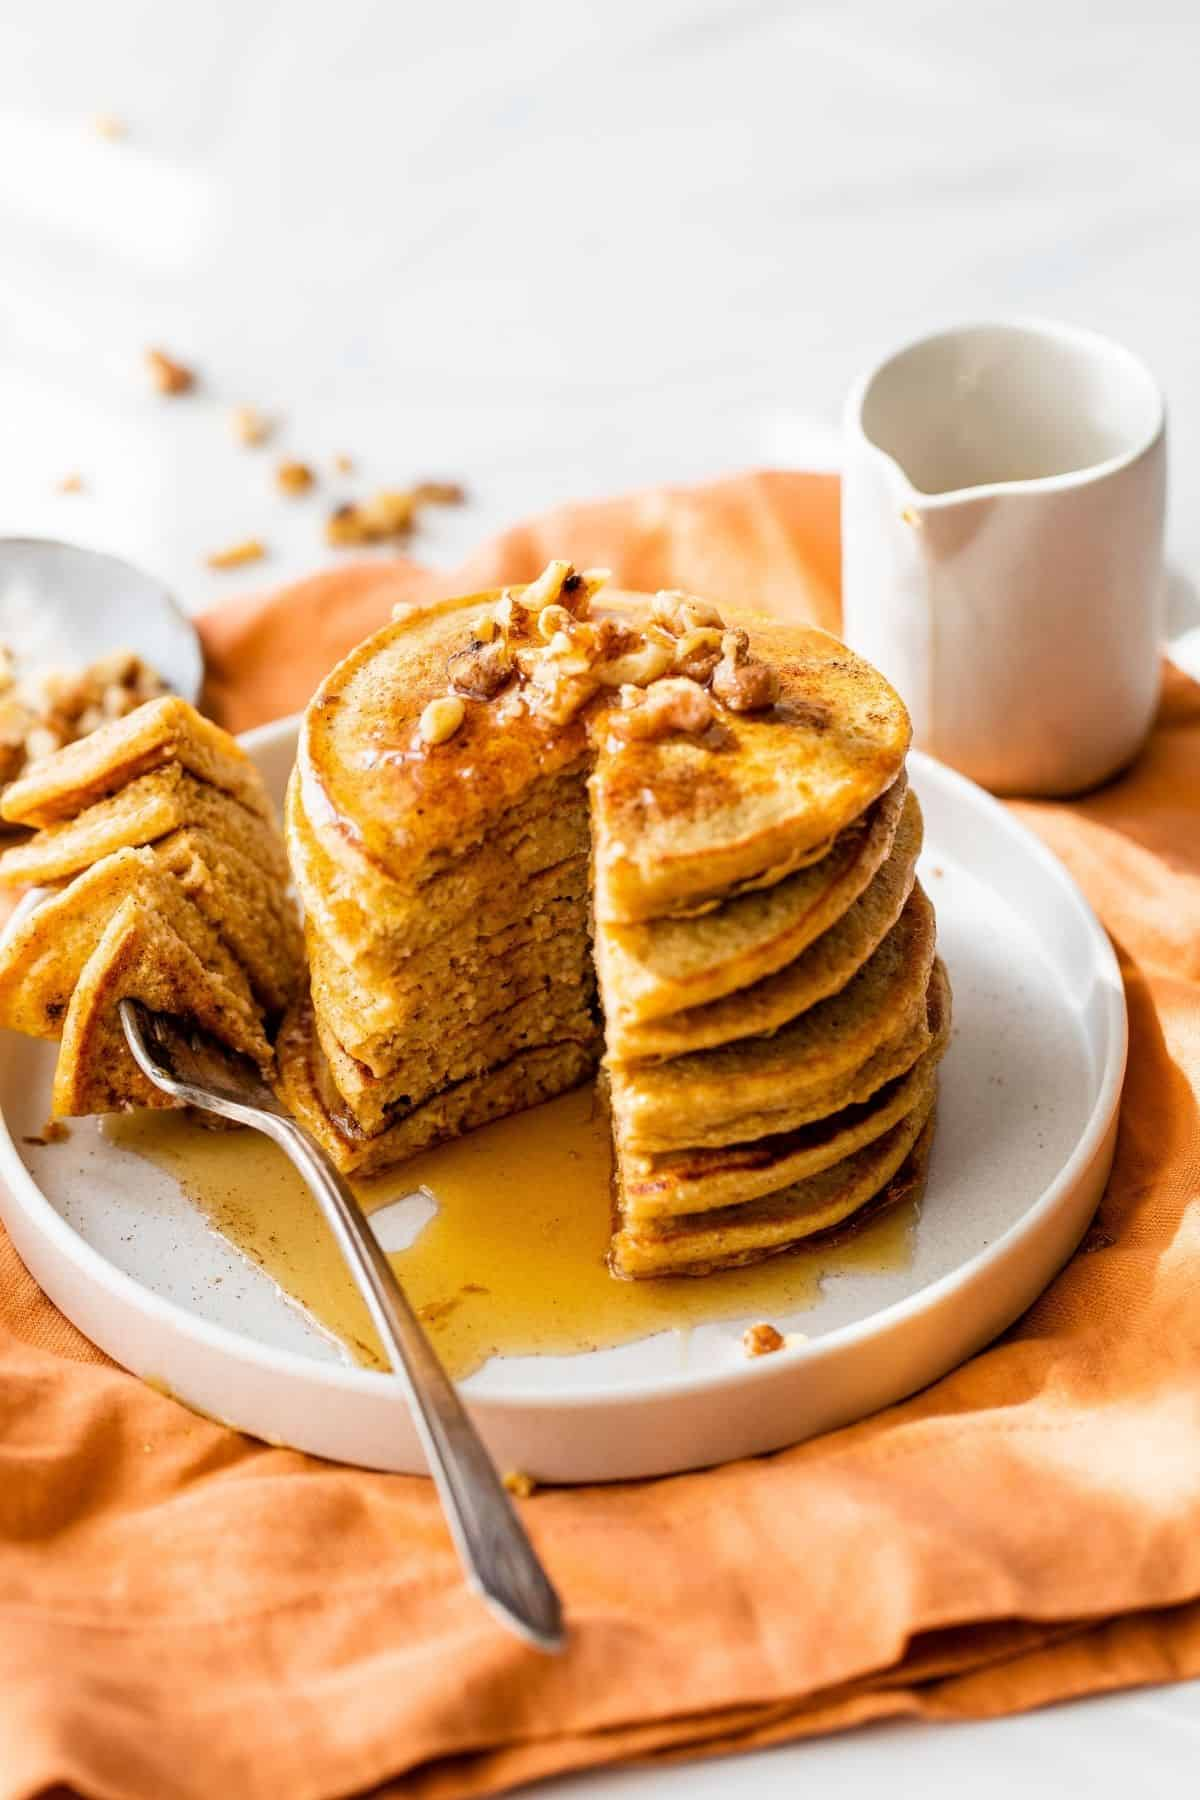 pumpkin pancakes with maple syrup and chopped nuts